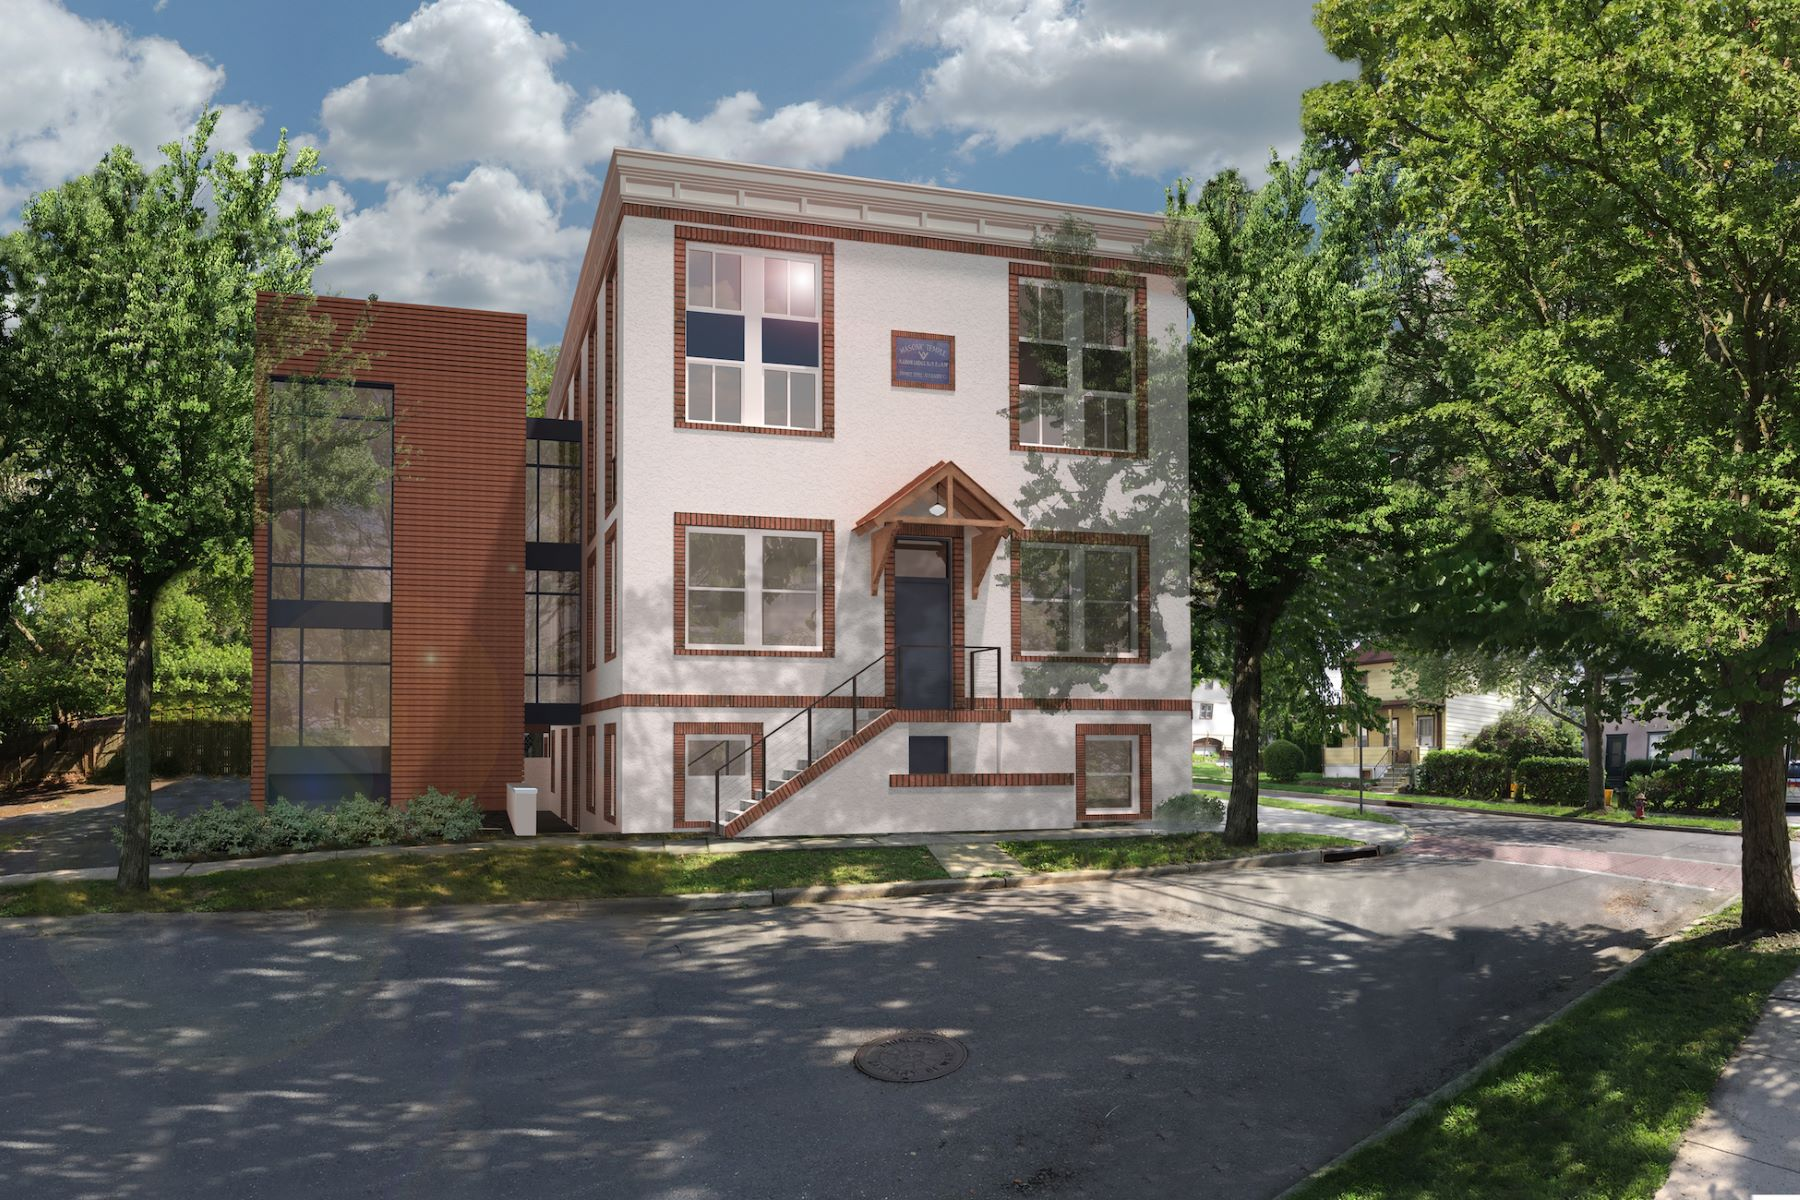 Property for Rent at Welcome to 30 Maclean! 30 Maclean Street Unit 6, Princeton, New Jersey 08542 United States